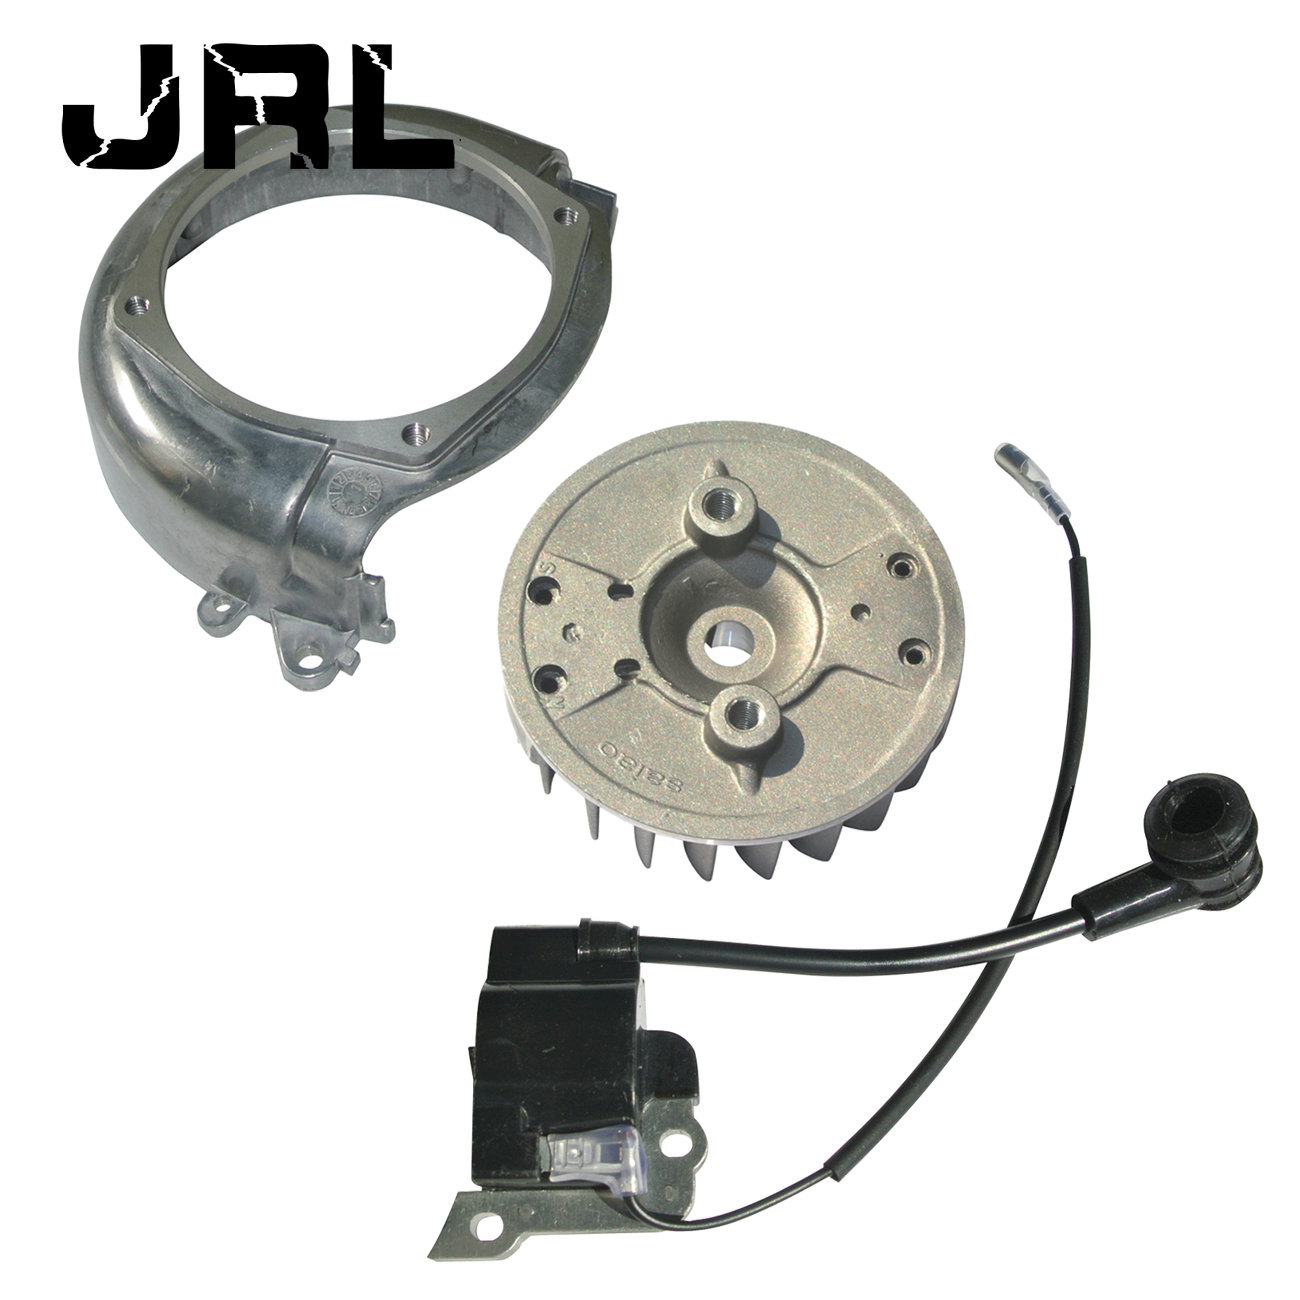 New Ignition Coil & Flywheel & Flywheel Cover Fit Honda GX35 Motor Spare Part